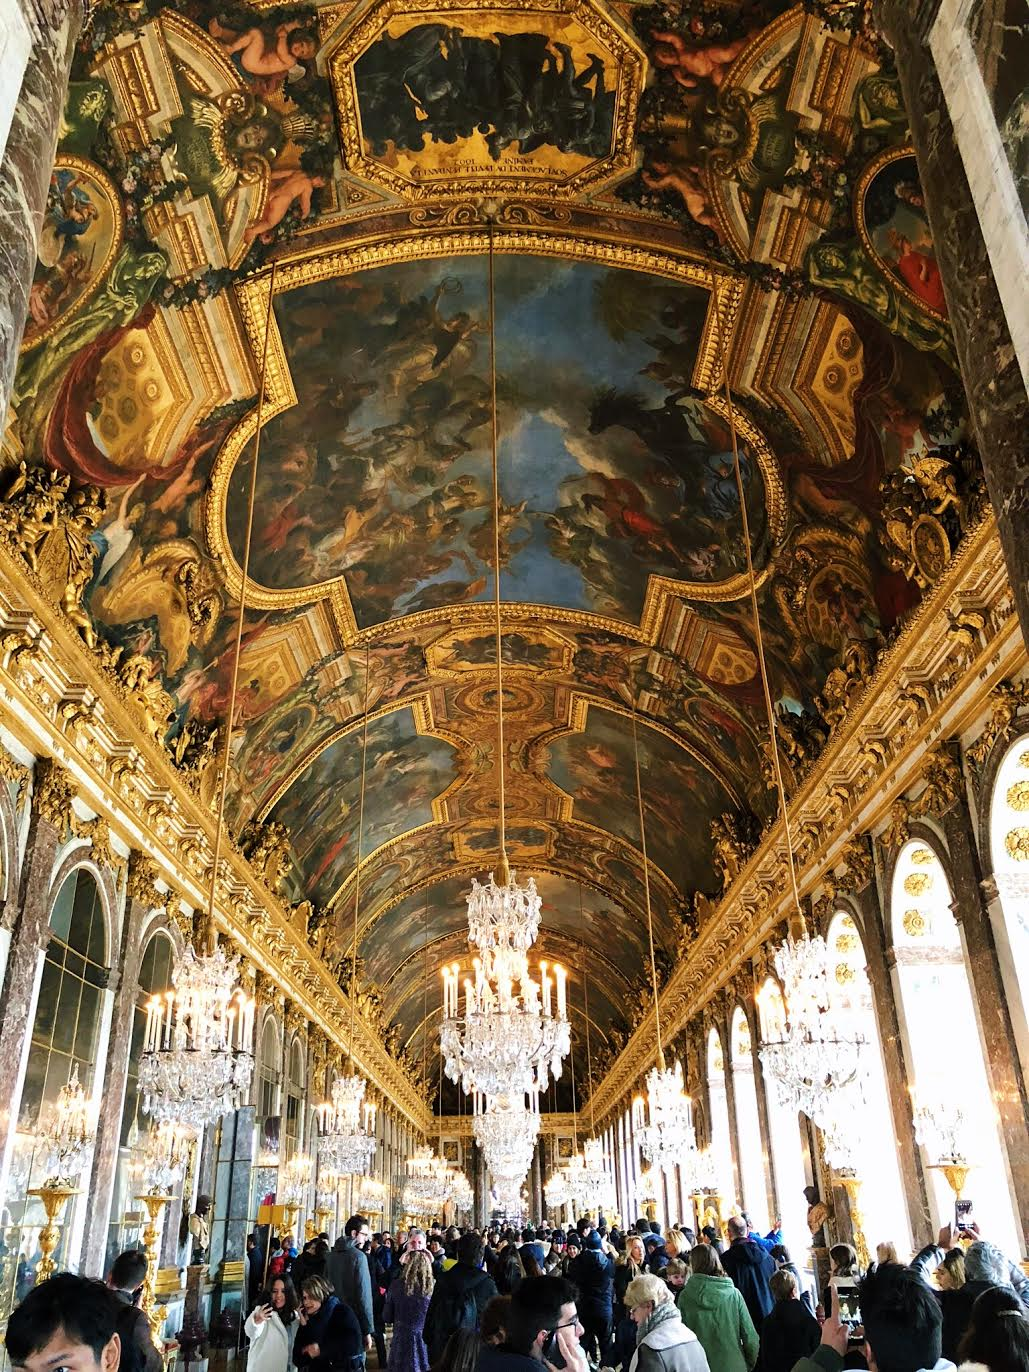 Muslim-travel-guide-Paris-Palace-of-Versailles-Hall-of-Mirrors.jpg